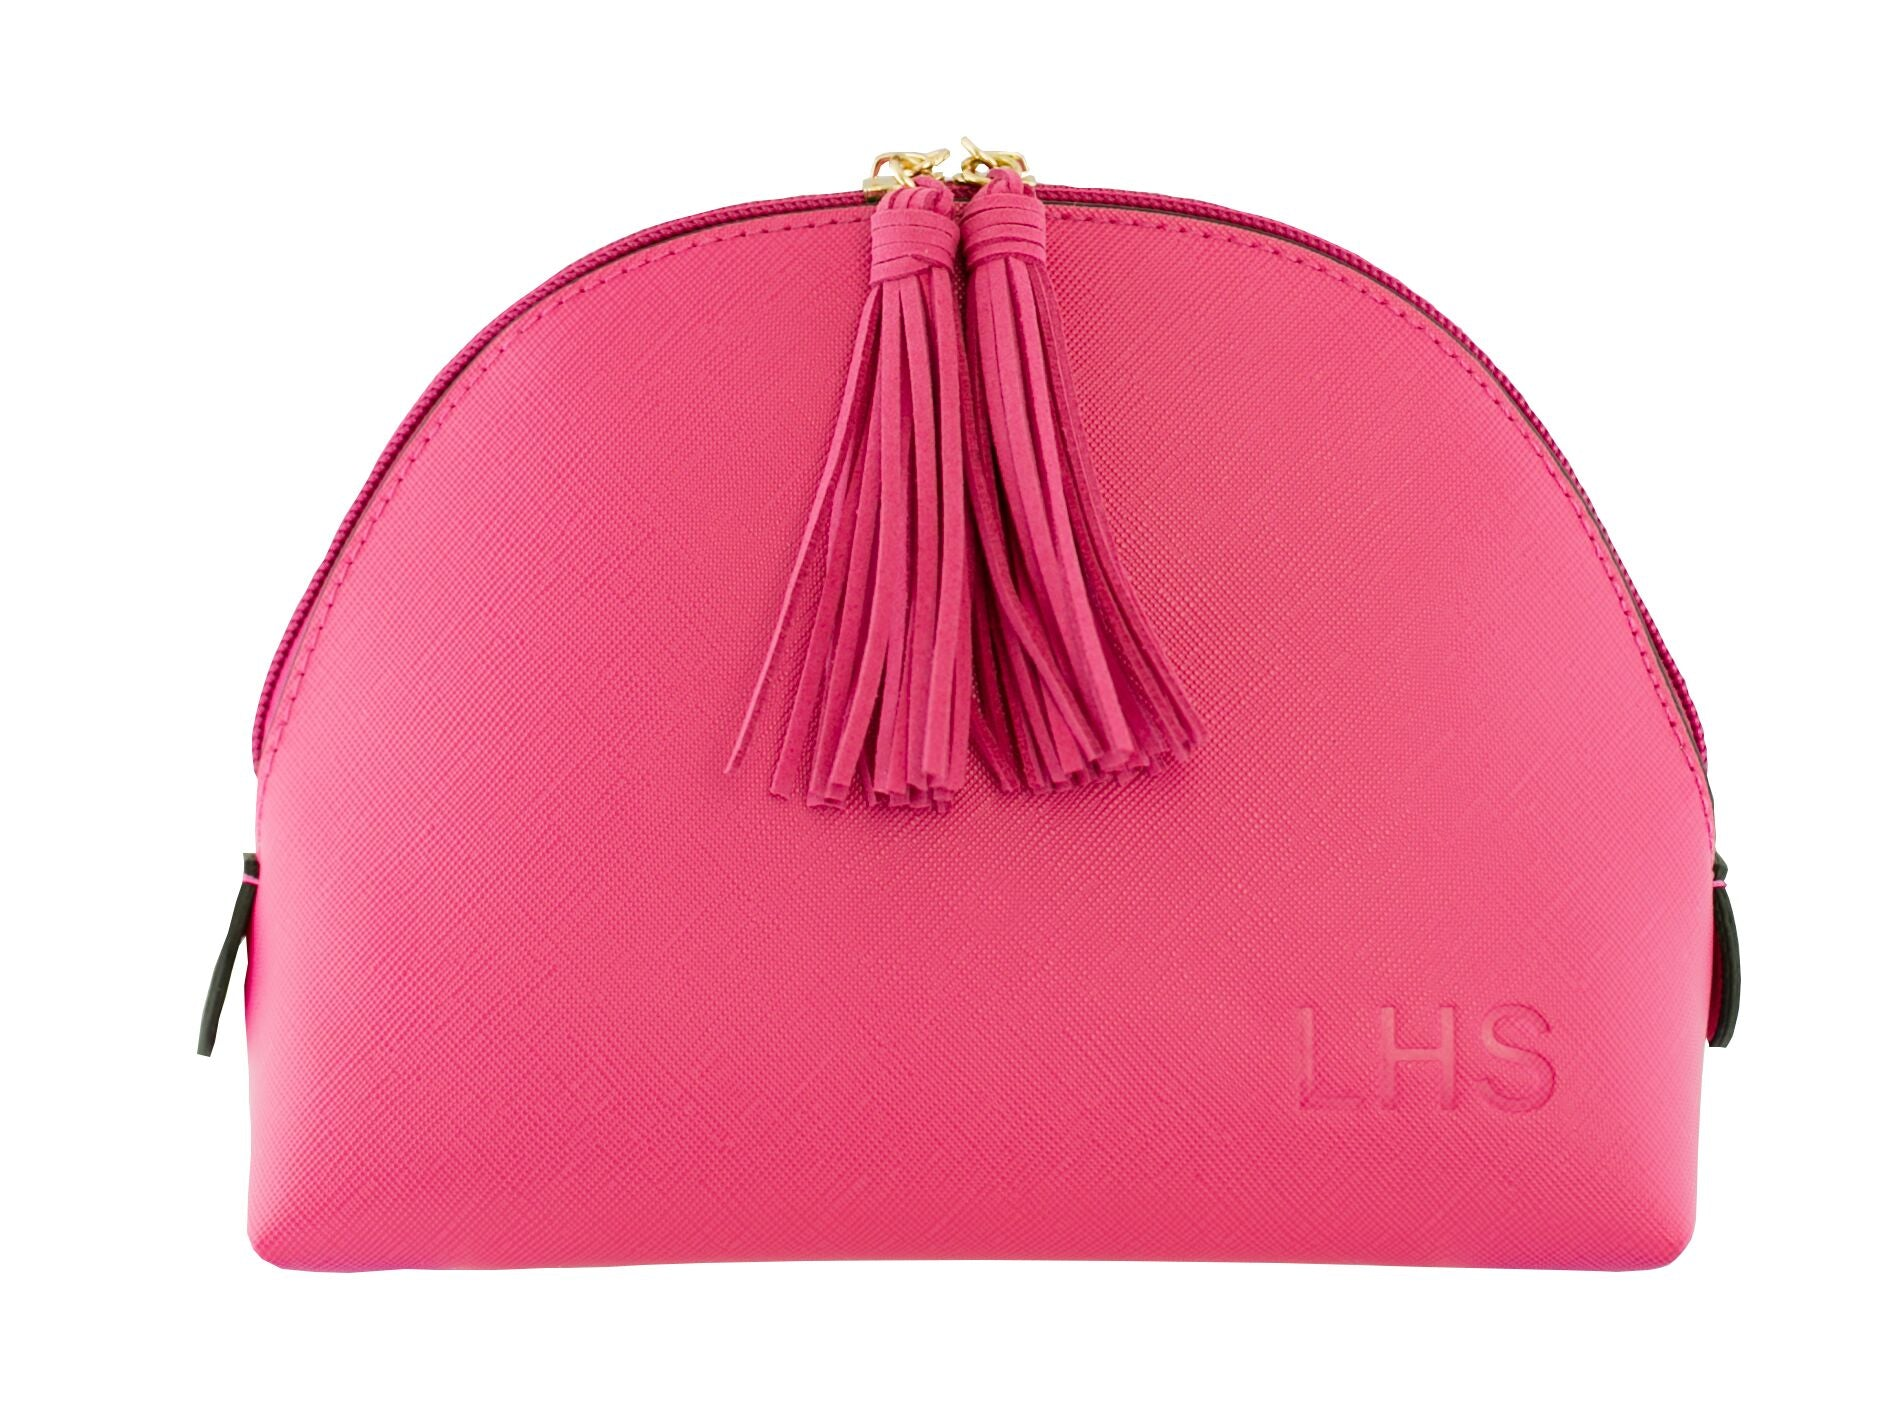 Long Haul Spa Kit - Fuchsia Tassel Bag